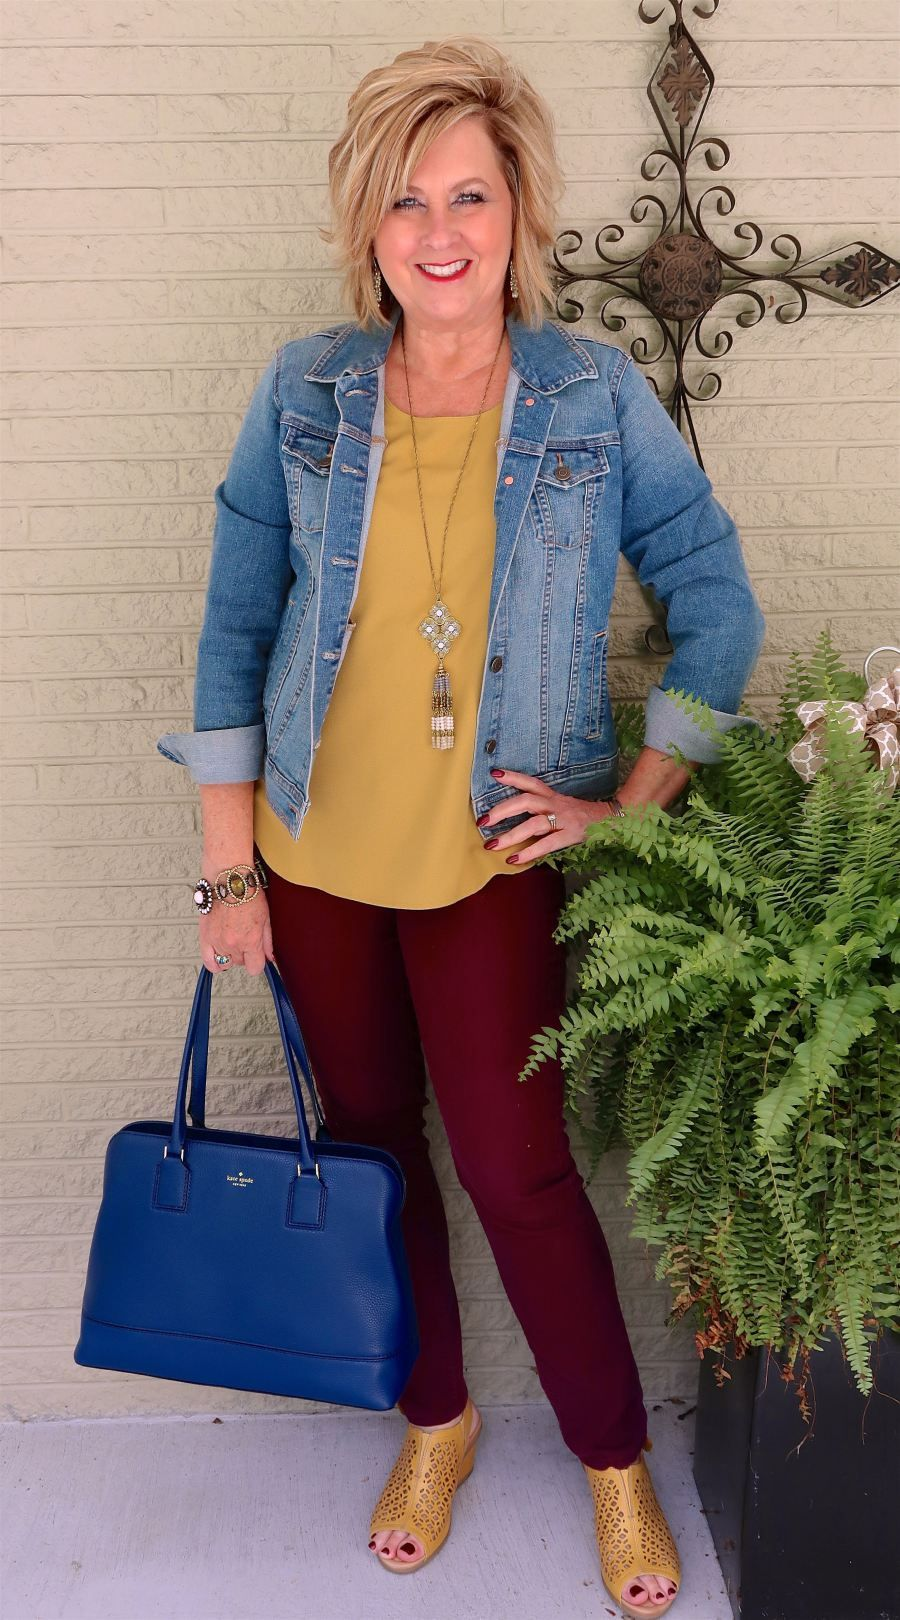 MUSTARD WILL BE A HOT COLOR FOR FALL – 50 IS NOT OLD